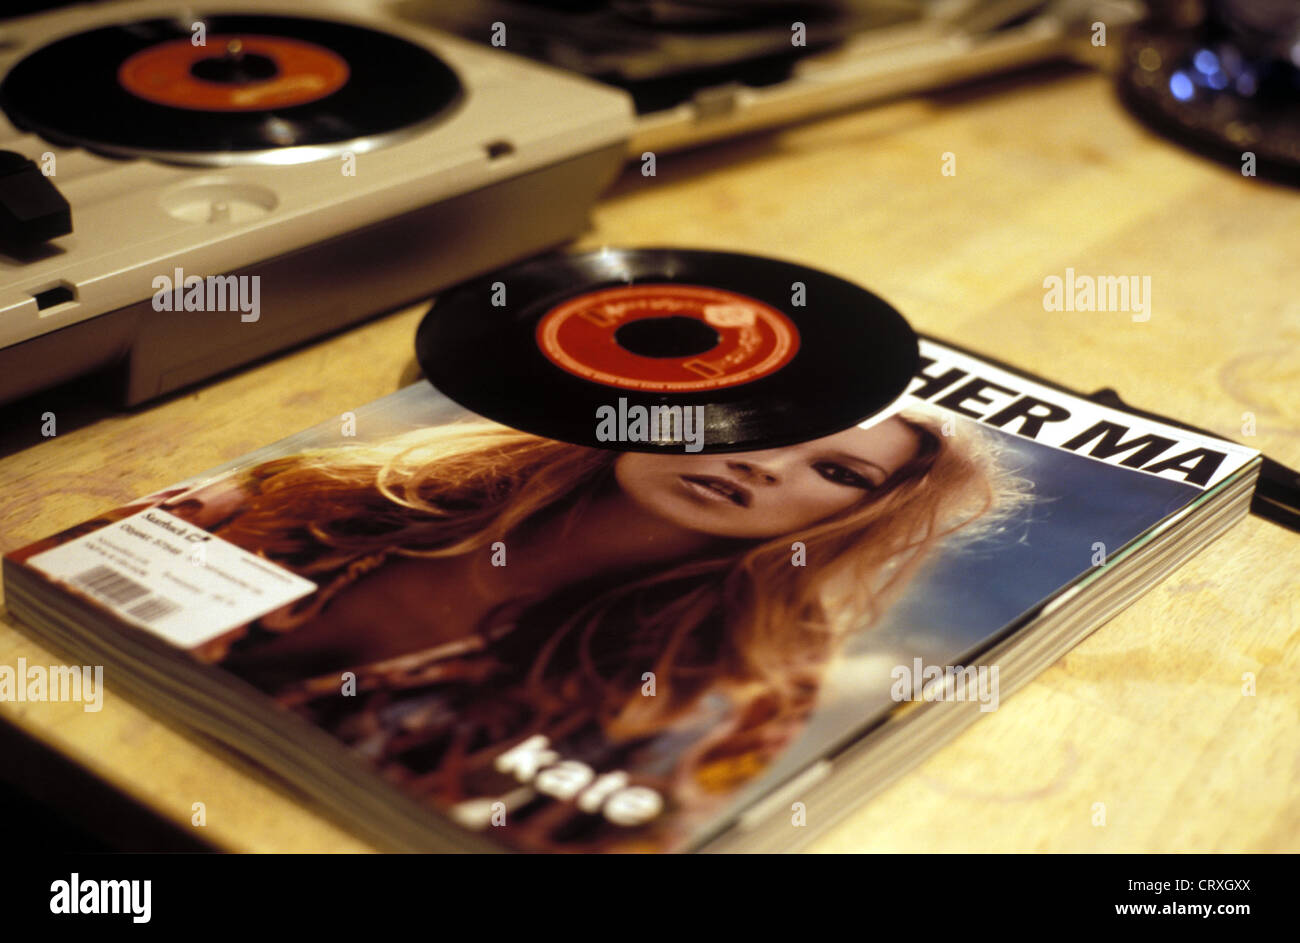 Close-up of a magazine and two singles - Stock Image